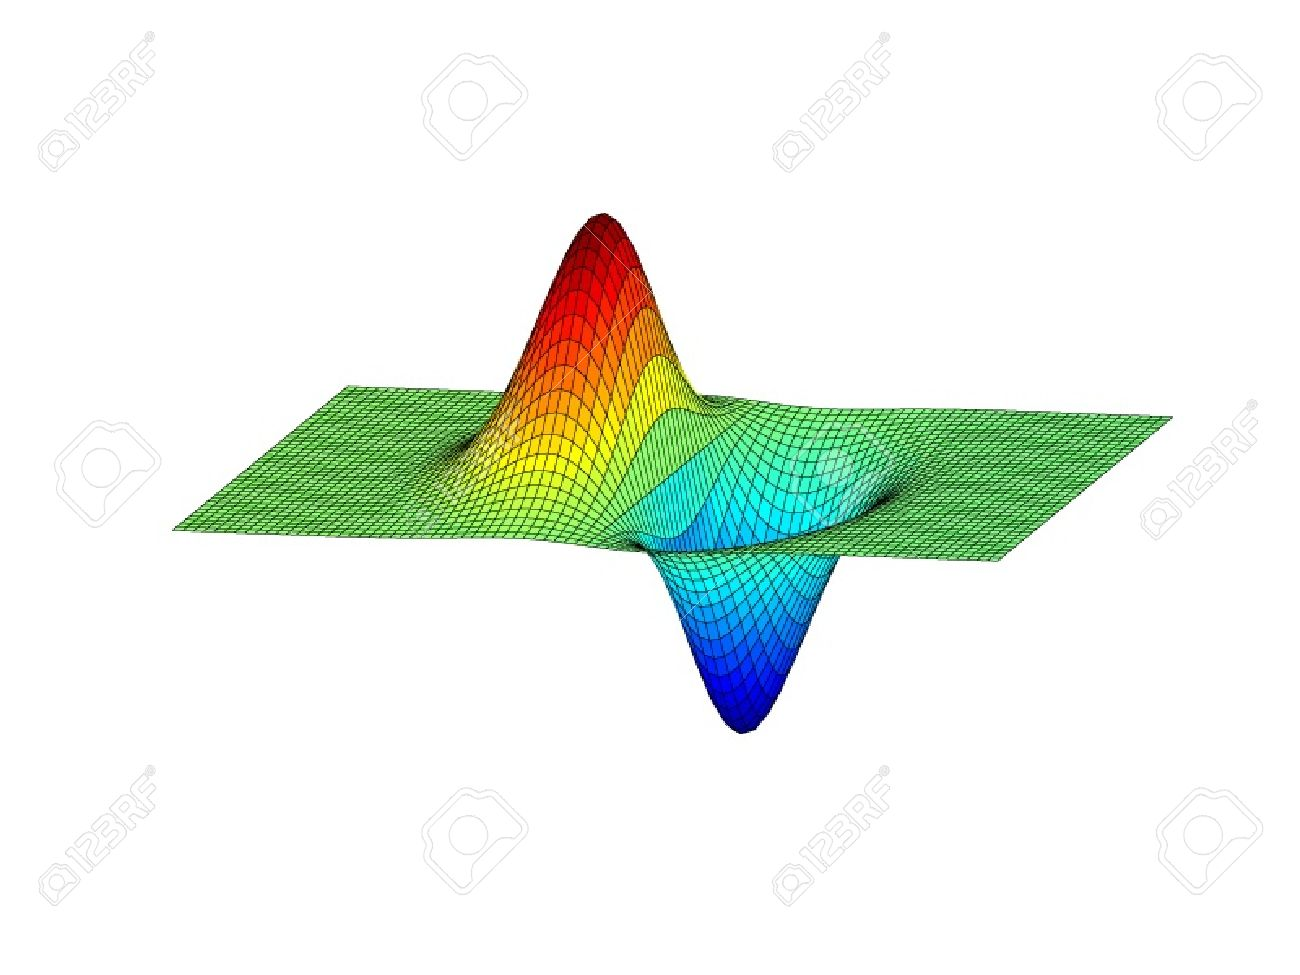 beautiful colored 3d graph of a mathematical function royalty free